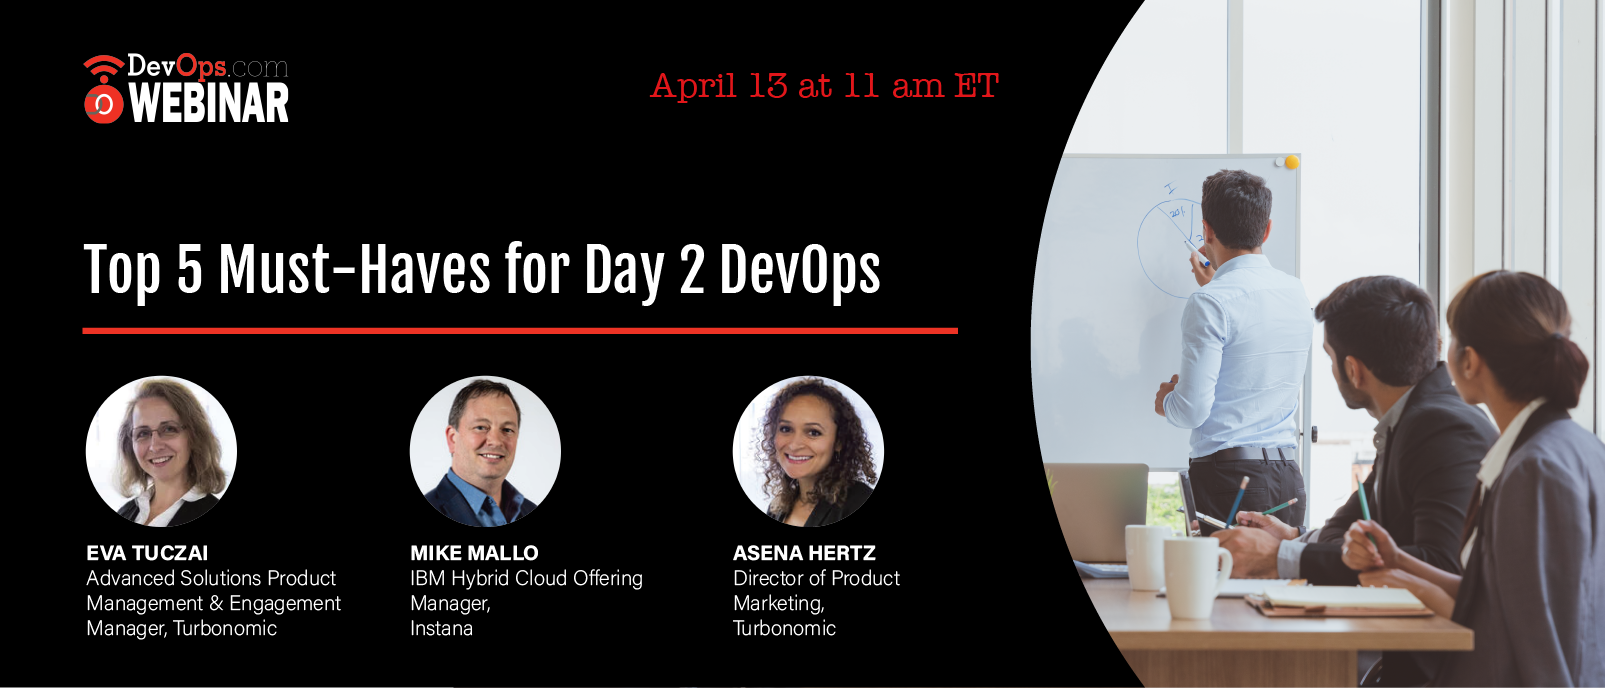 Top 5 Must-Haves for Day 2 DevOps